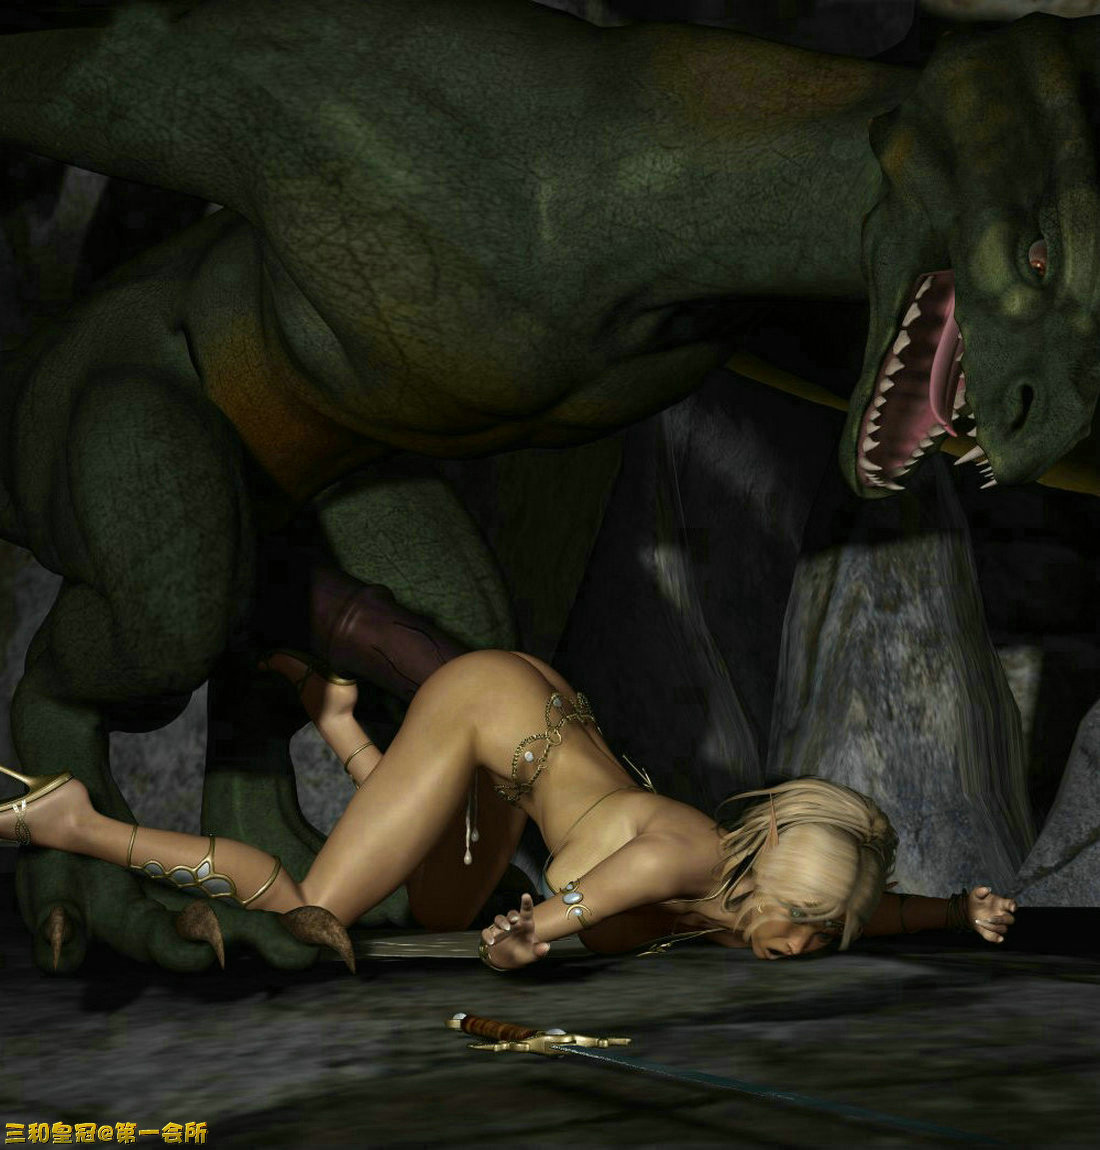 Dragon and elf porn pic galleries sex pics